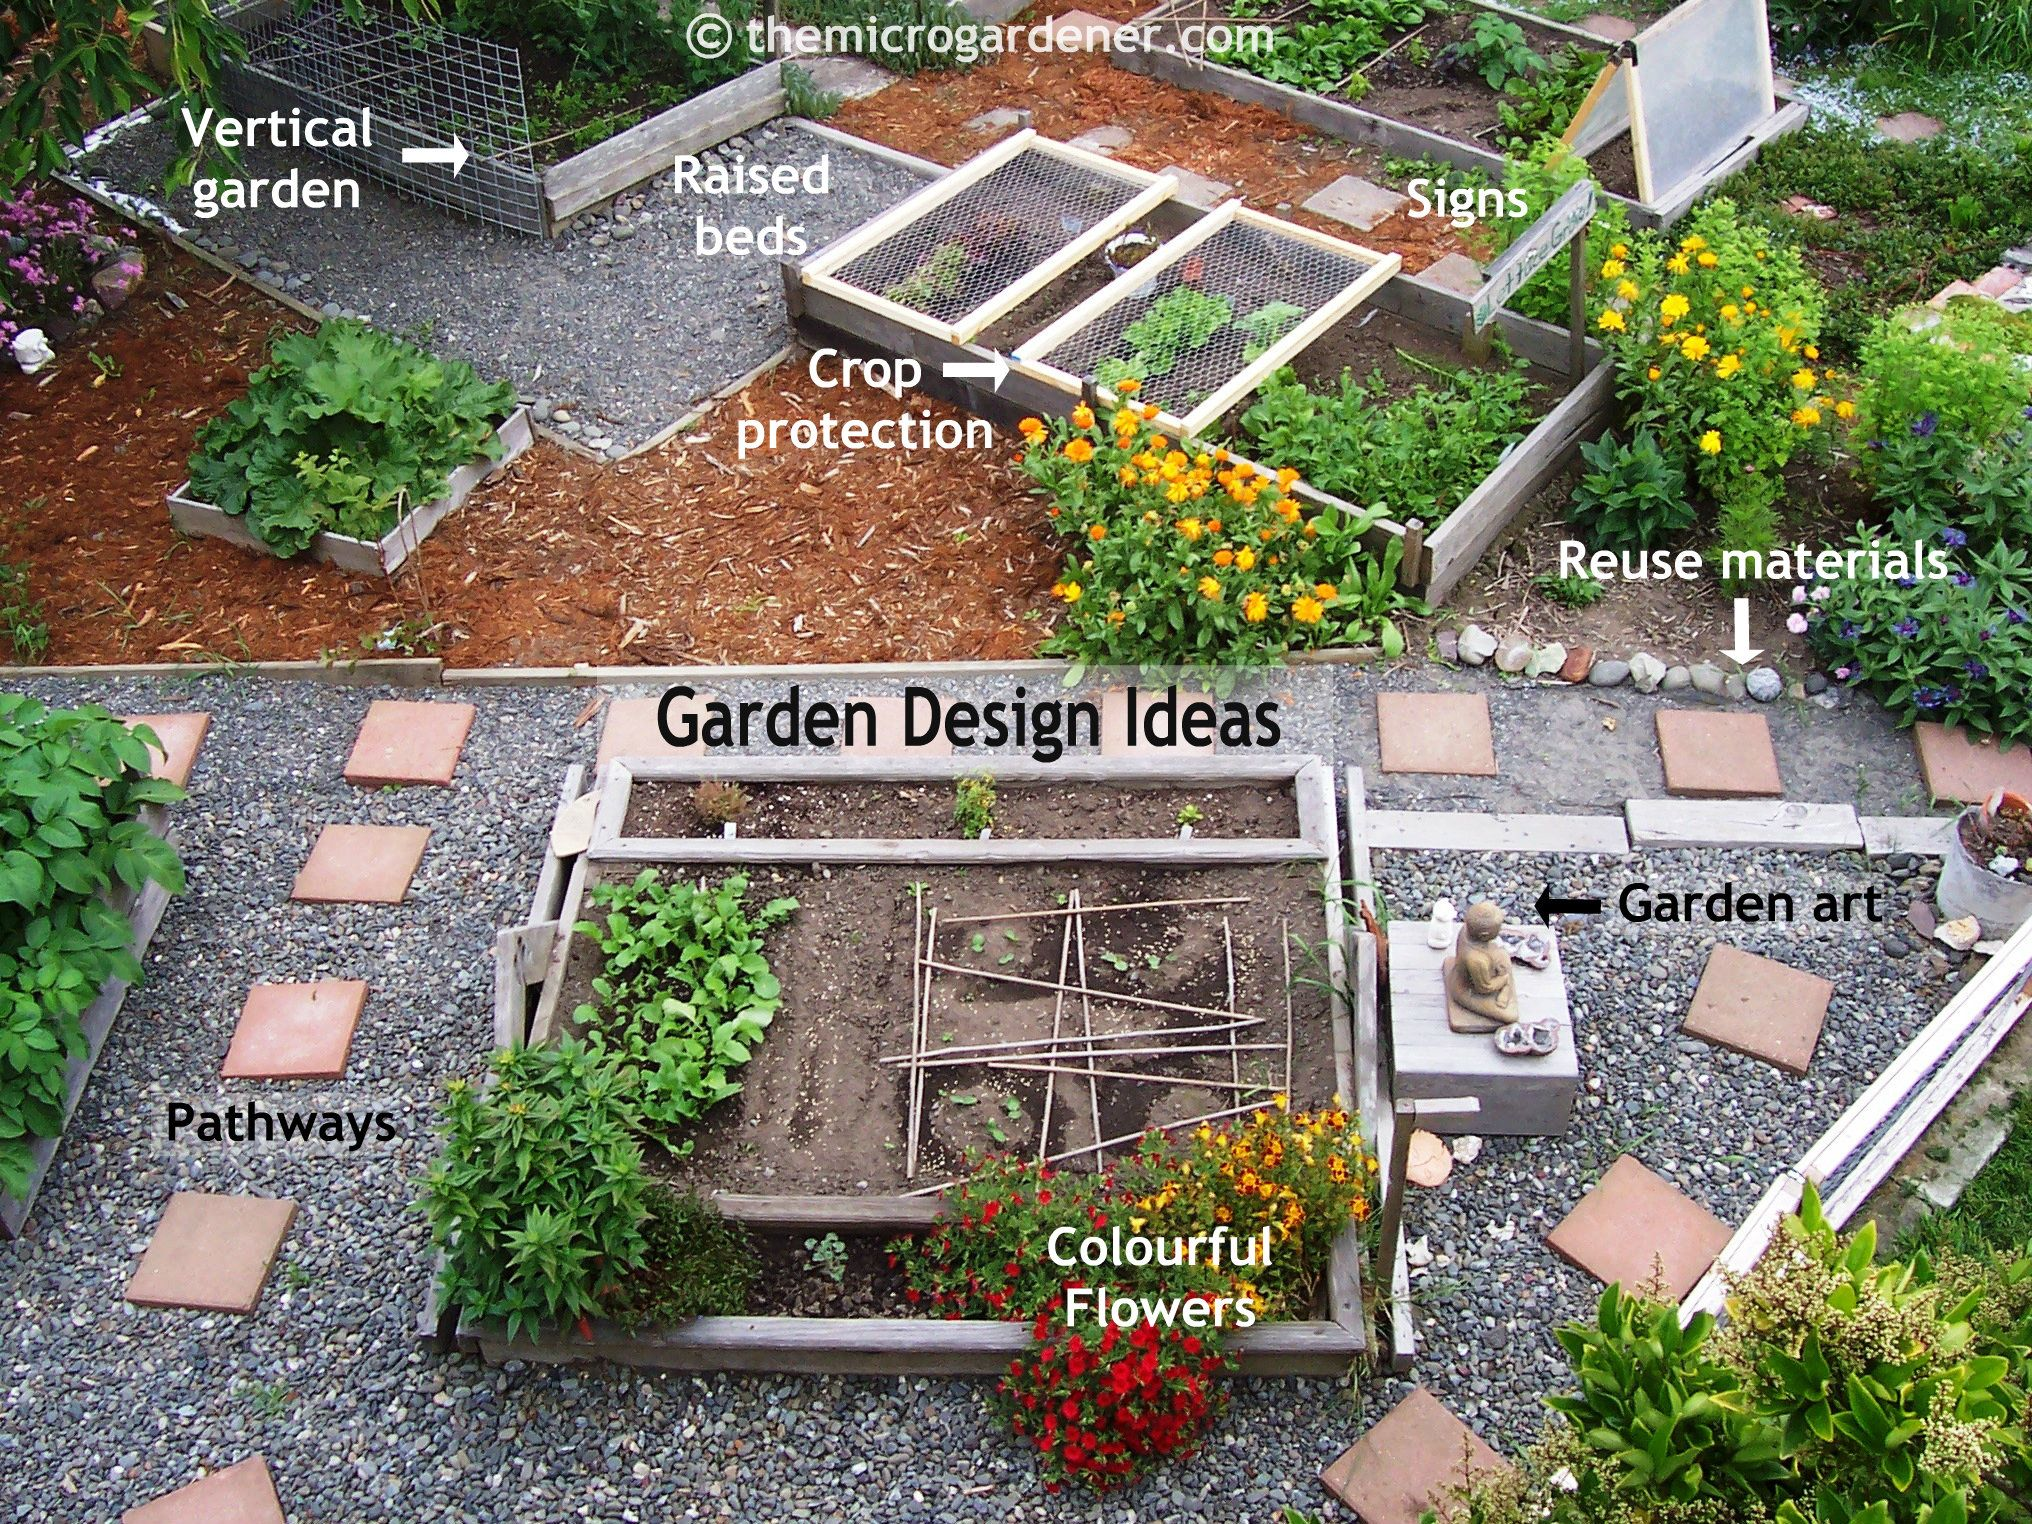 Small garden design ideas on pinterest vertical gardens Small garden ideas